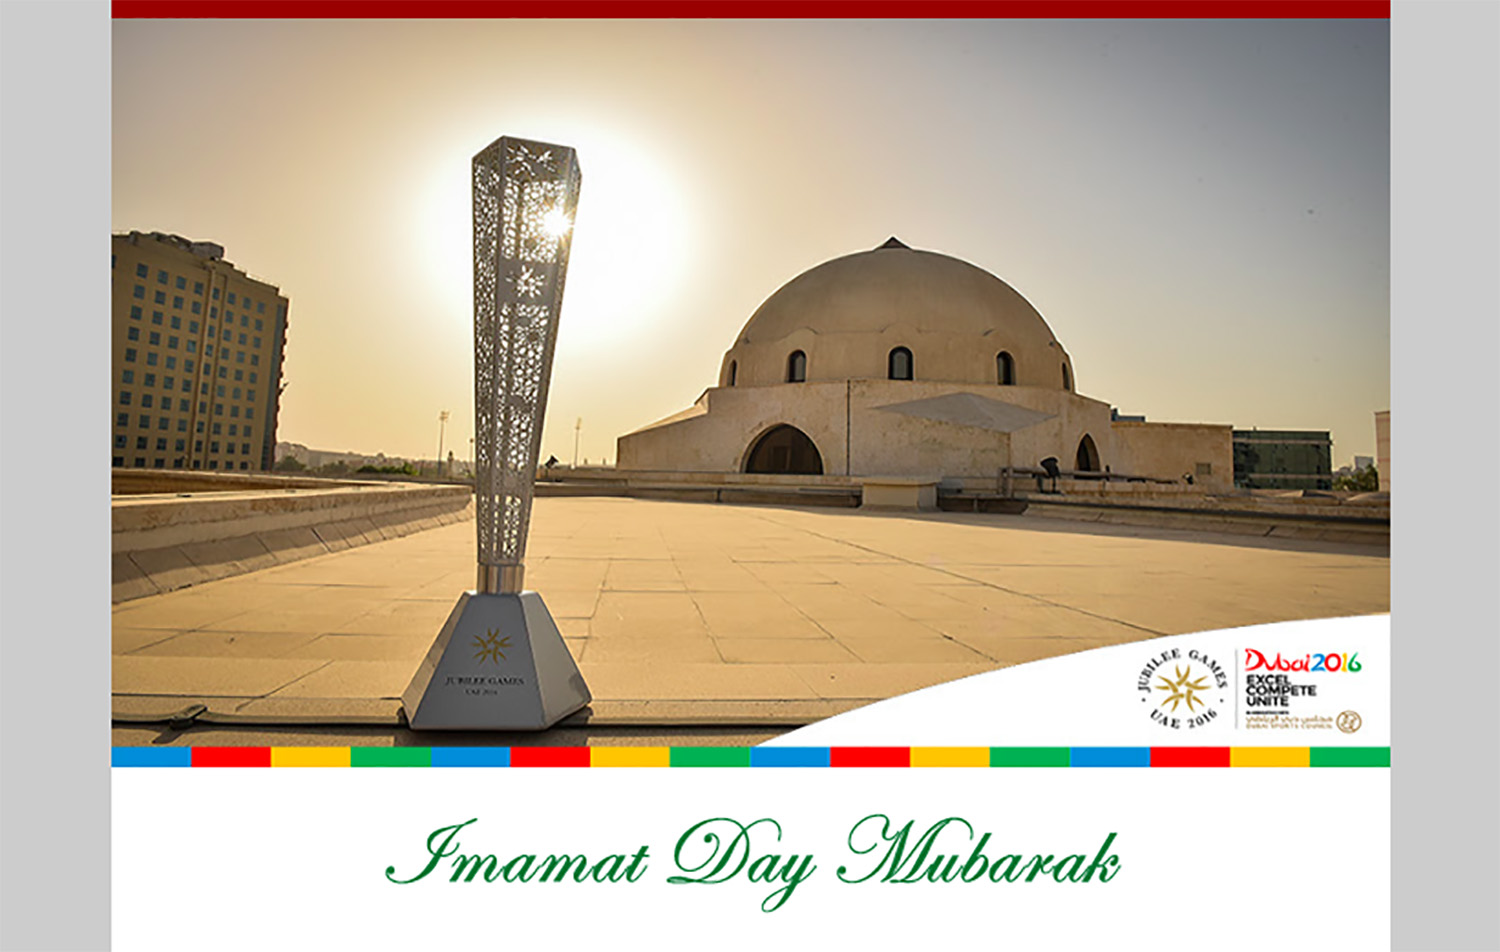 Send an Imamat Day eCard to your friends and family. Photo: TheIsmaili.org